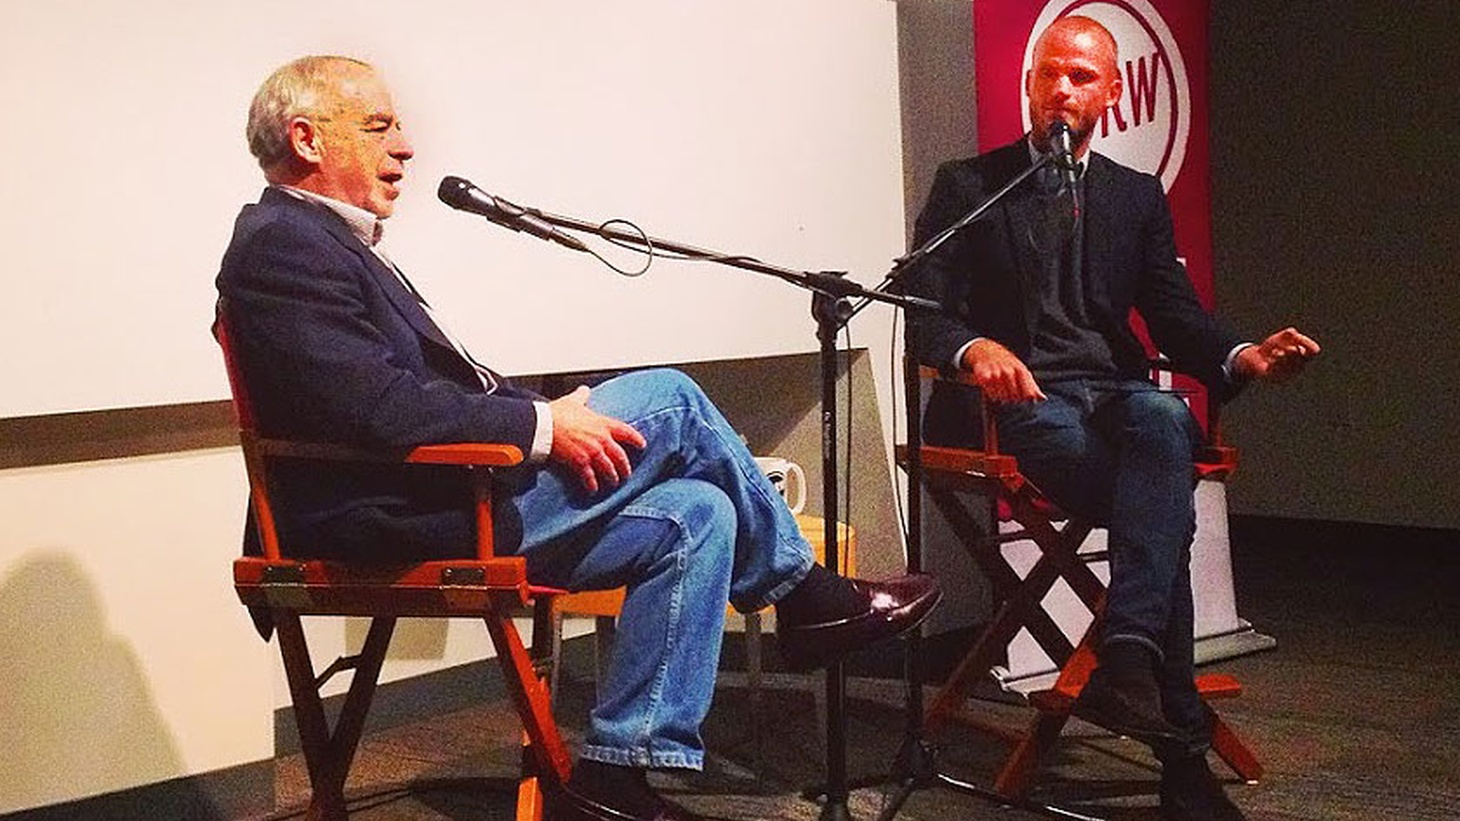 KCRW's Jonathan Bastian sits down with author Richard Russo in front of a live audience at Antioch University in Santa Barbara.